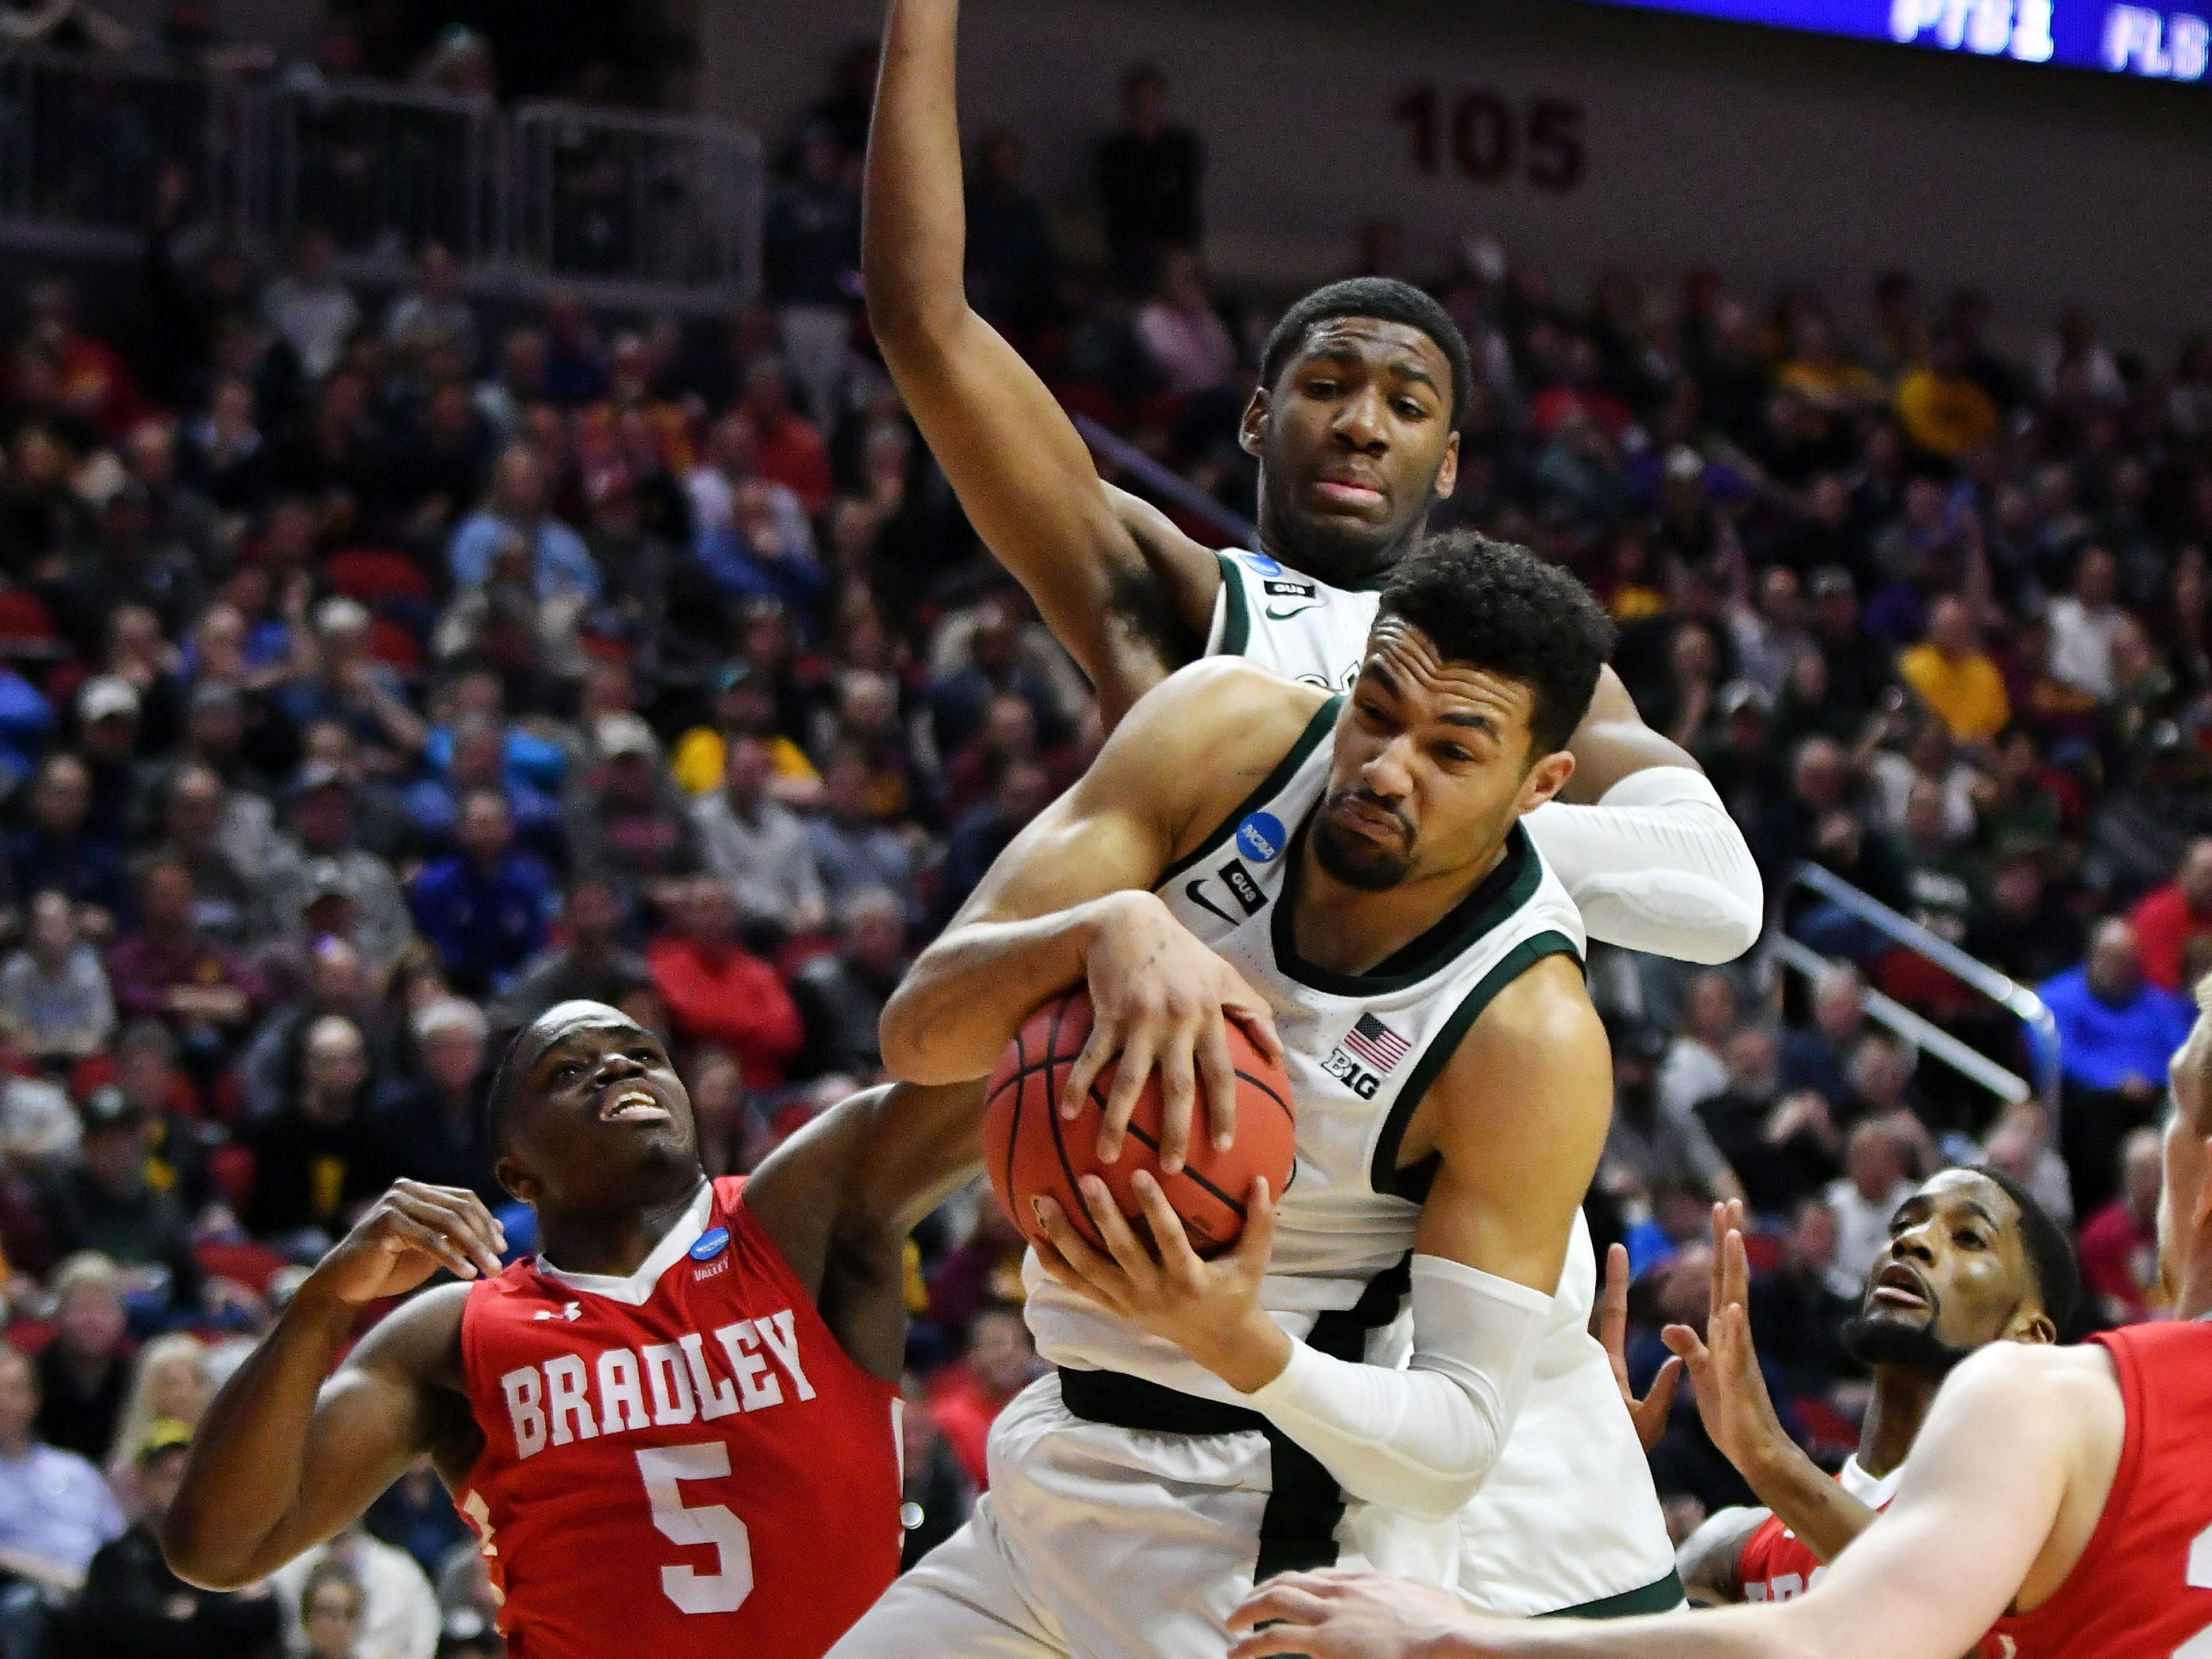 Michigan State forward Kenny Goins (25) comes down with a rebound next to Bradley guard Darrell Brown (5) in front of Michigan State's Aaron Henry, rear, in the second half.